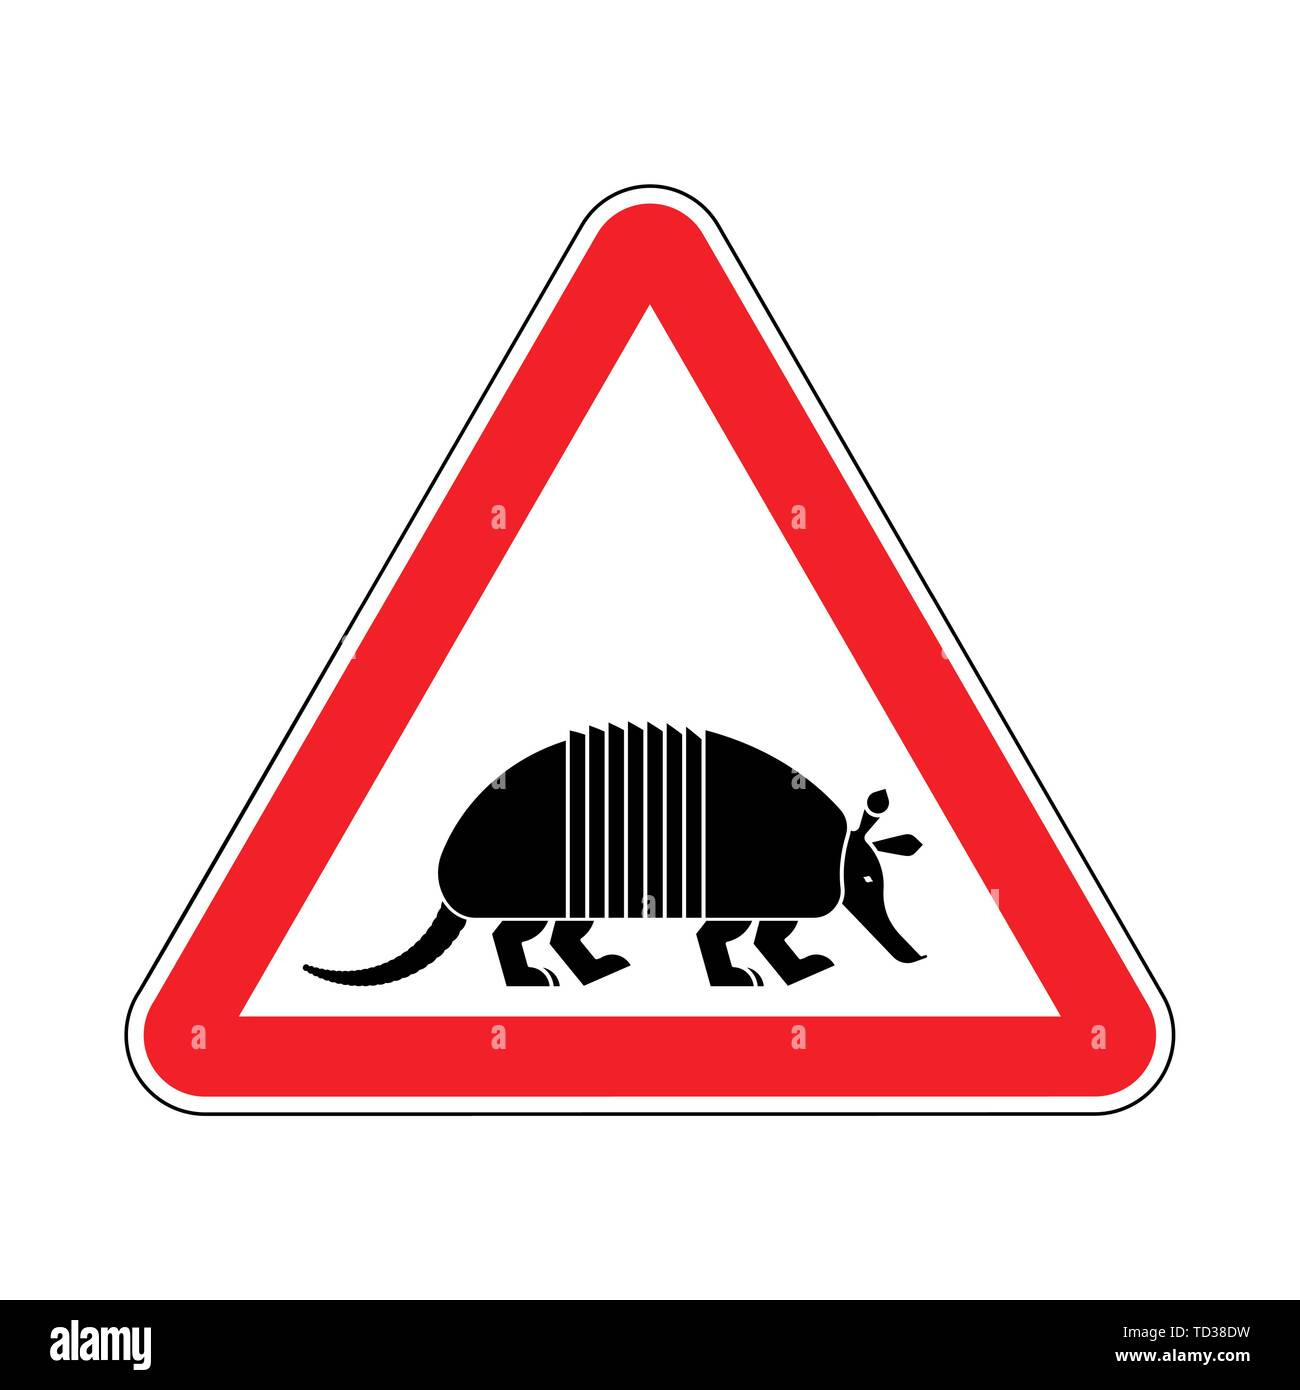 Attention armadillo. Caution Nine-hip Armadillo. Red triangle road sign - Stock Image